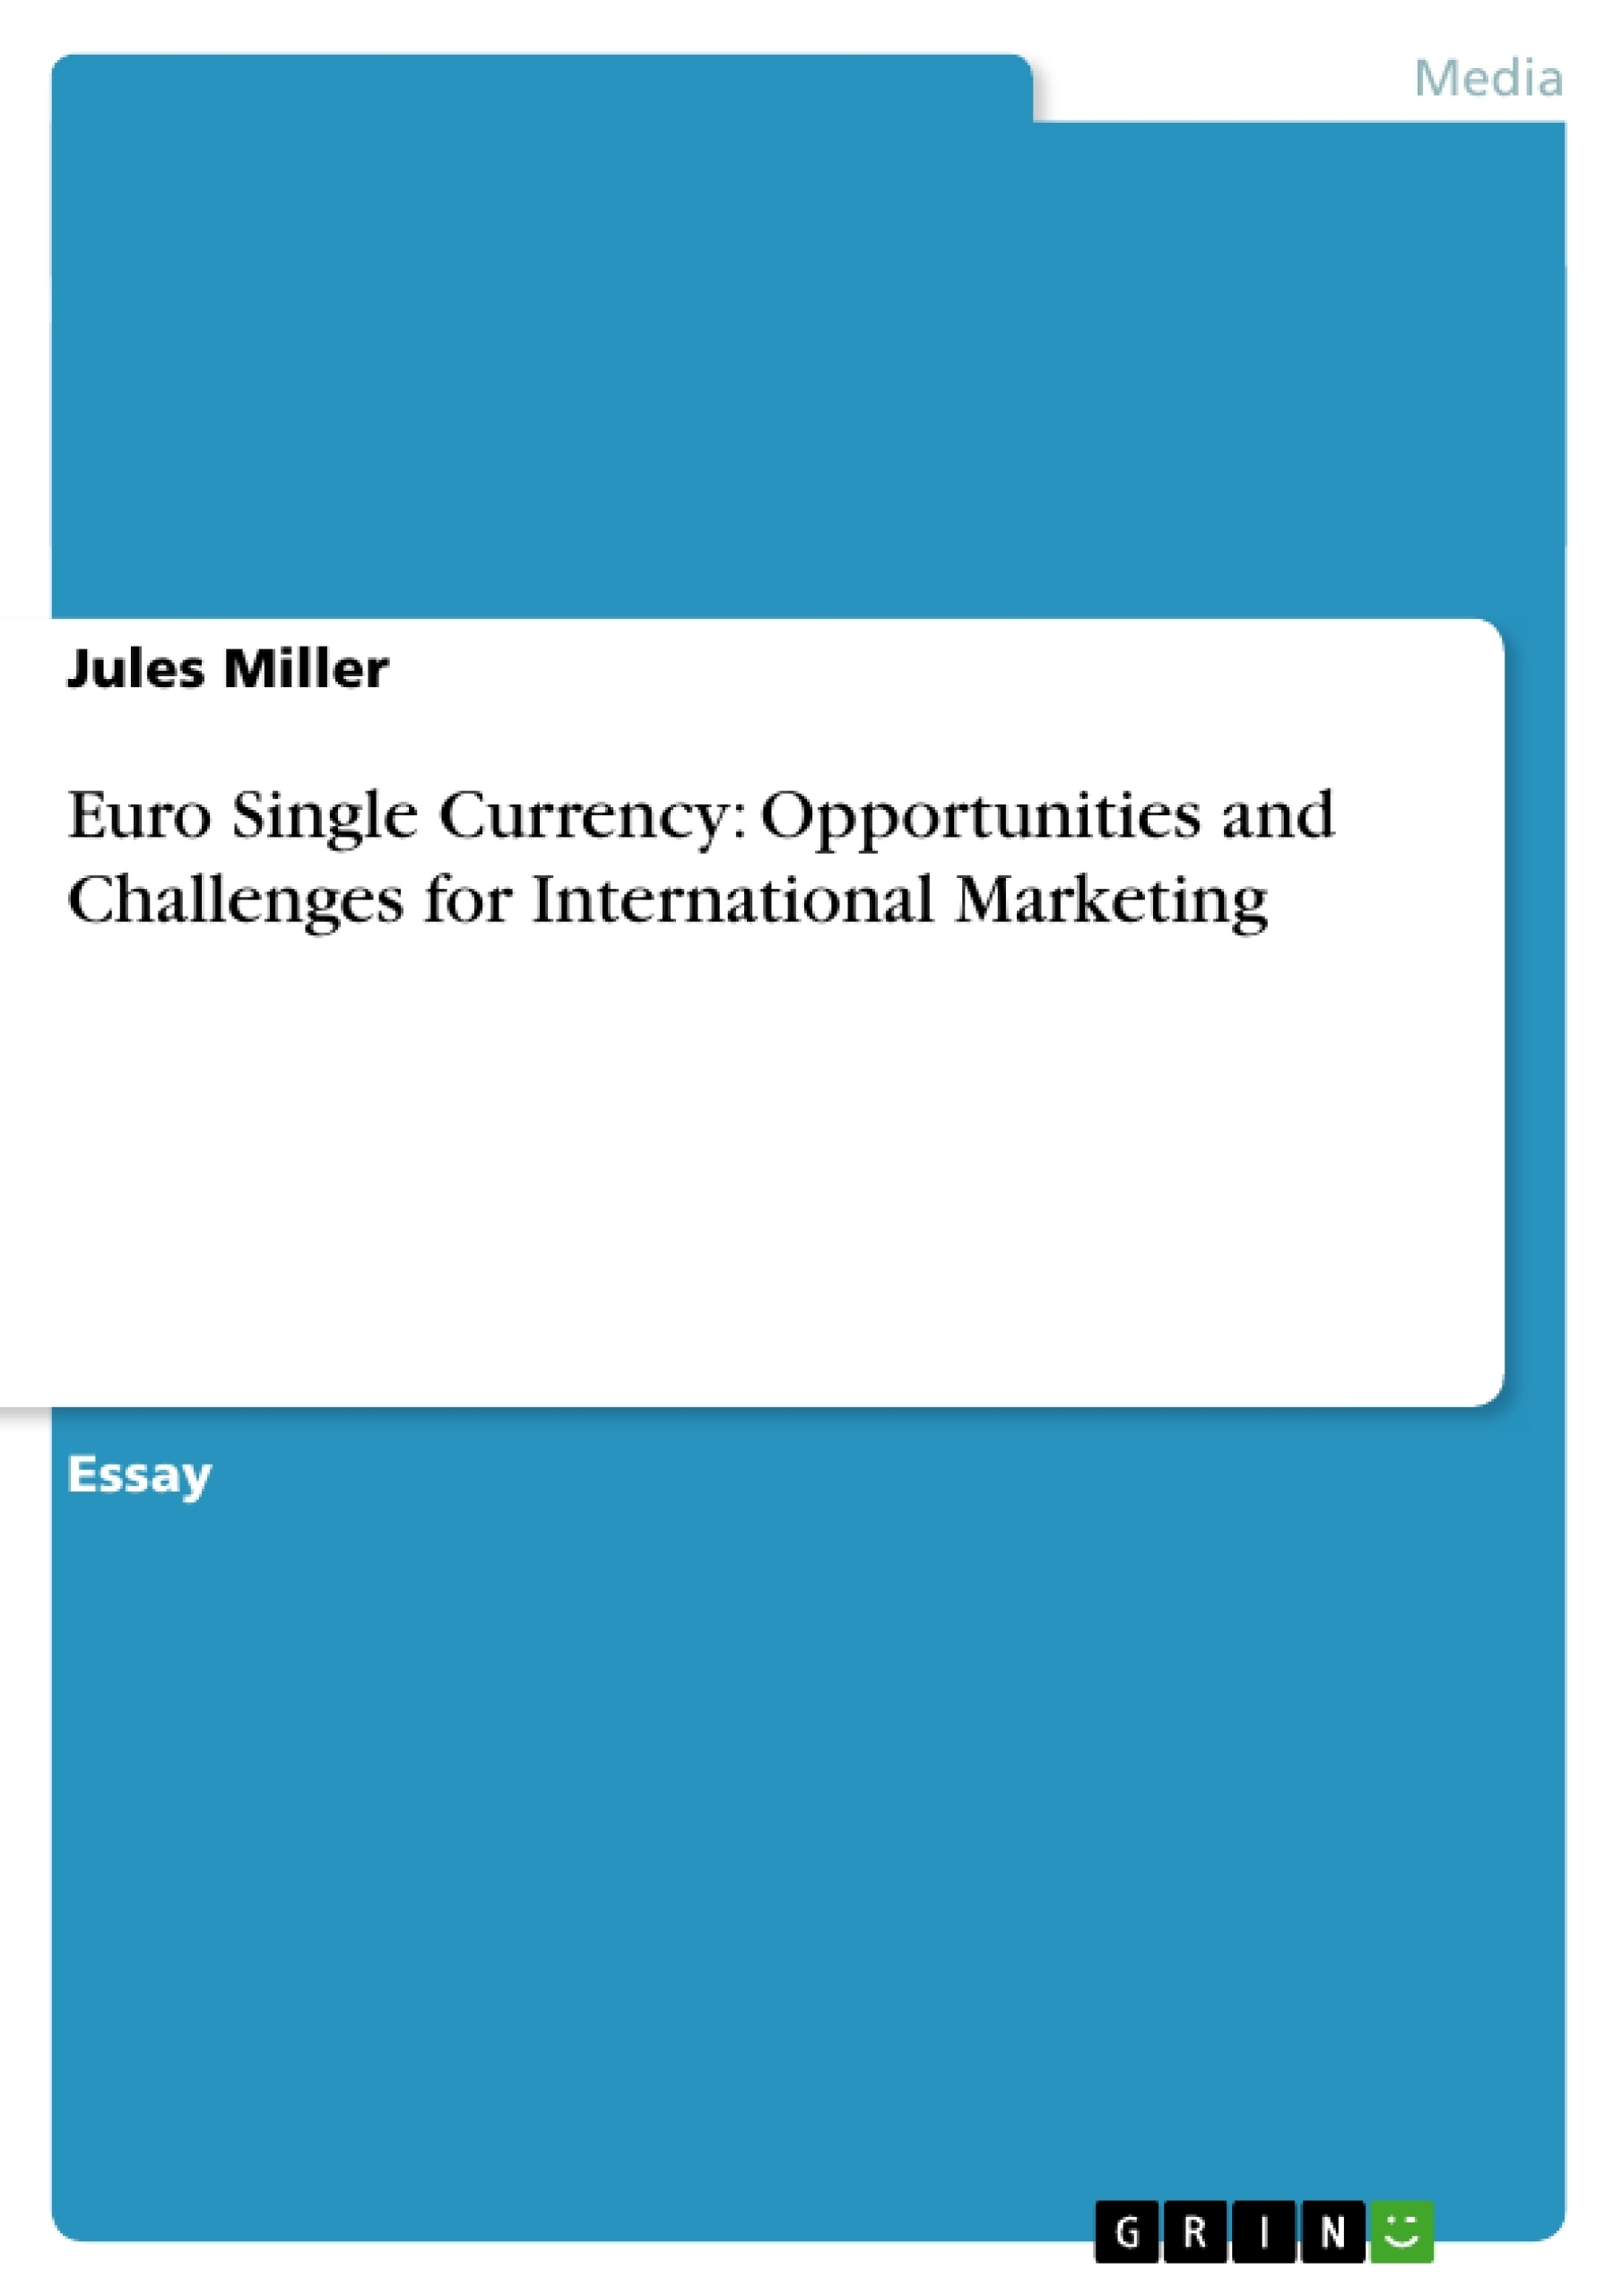 Title: Euro Single Currency: Opportunities and Challenges for International Marketing